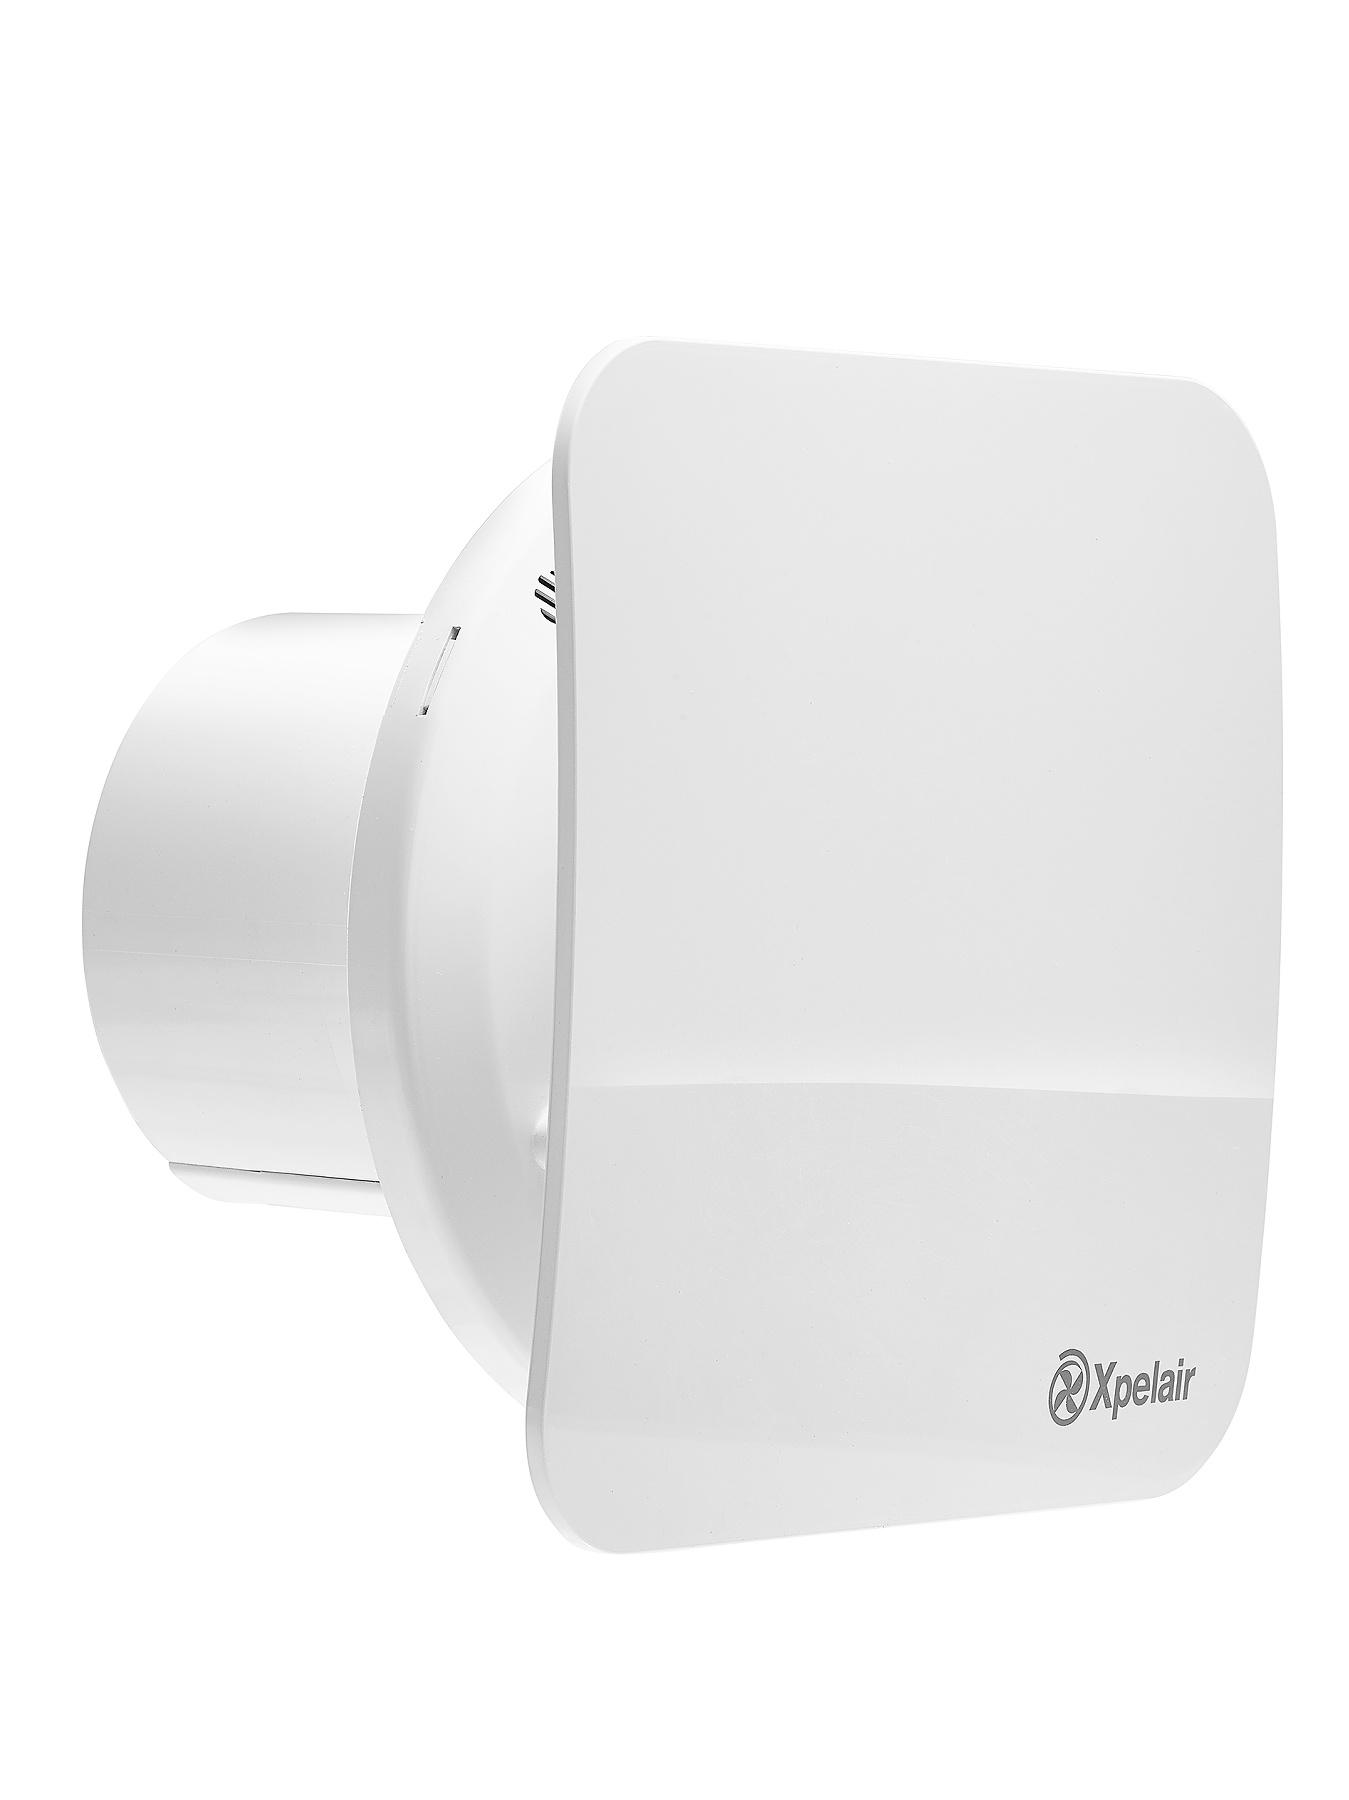 Xpelair Simple Silent Contour Square Bathroom Extractor Fan